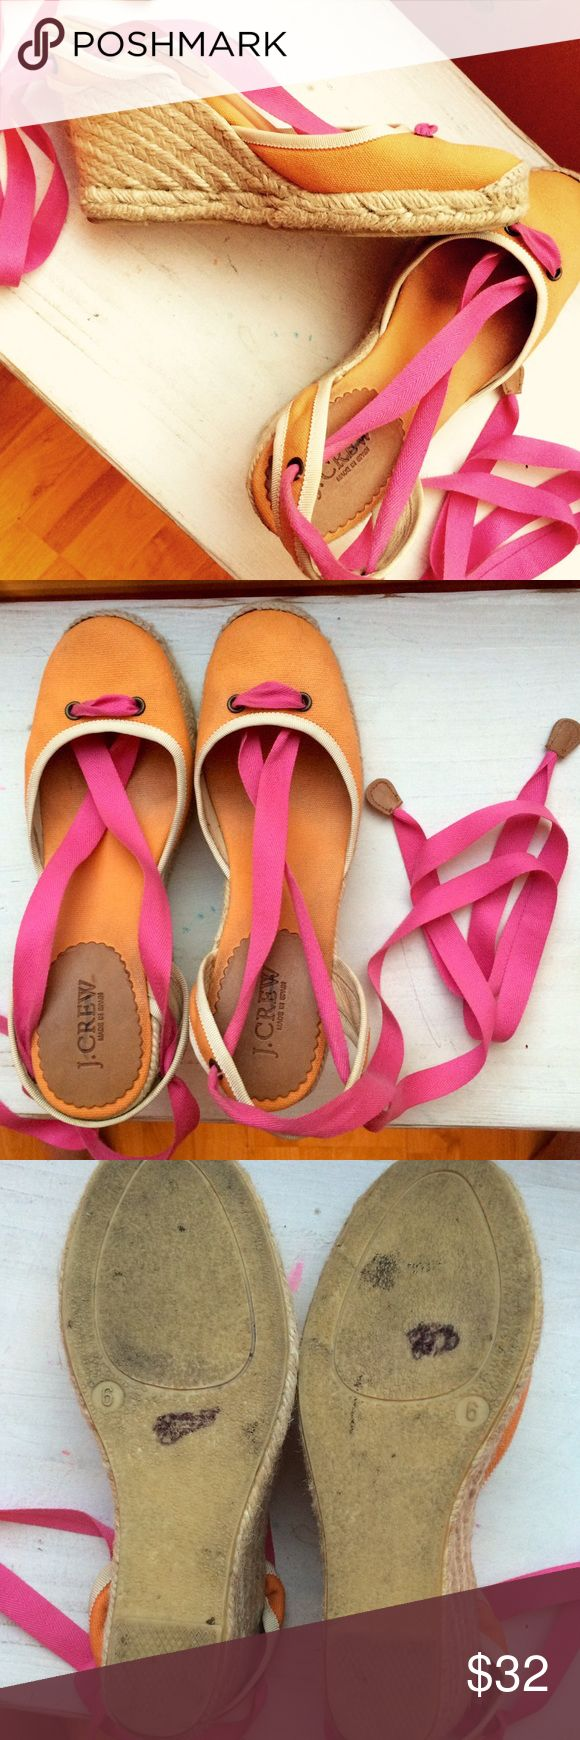 J. Crew colorful espadrilles Pretty orange and pink espadrilles, used but good condition. J. Crew Shoes Espadrilles